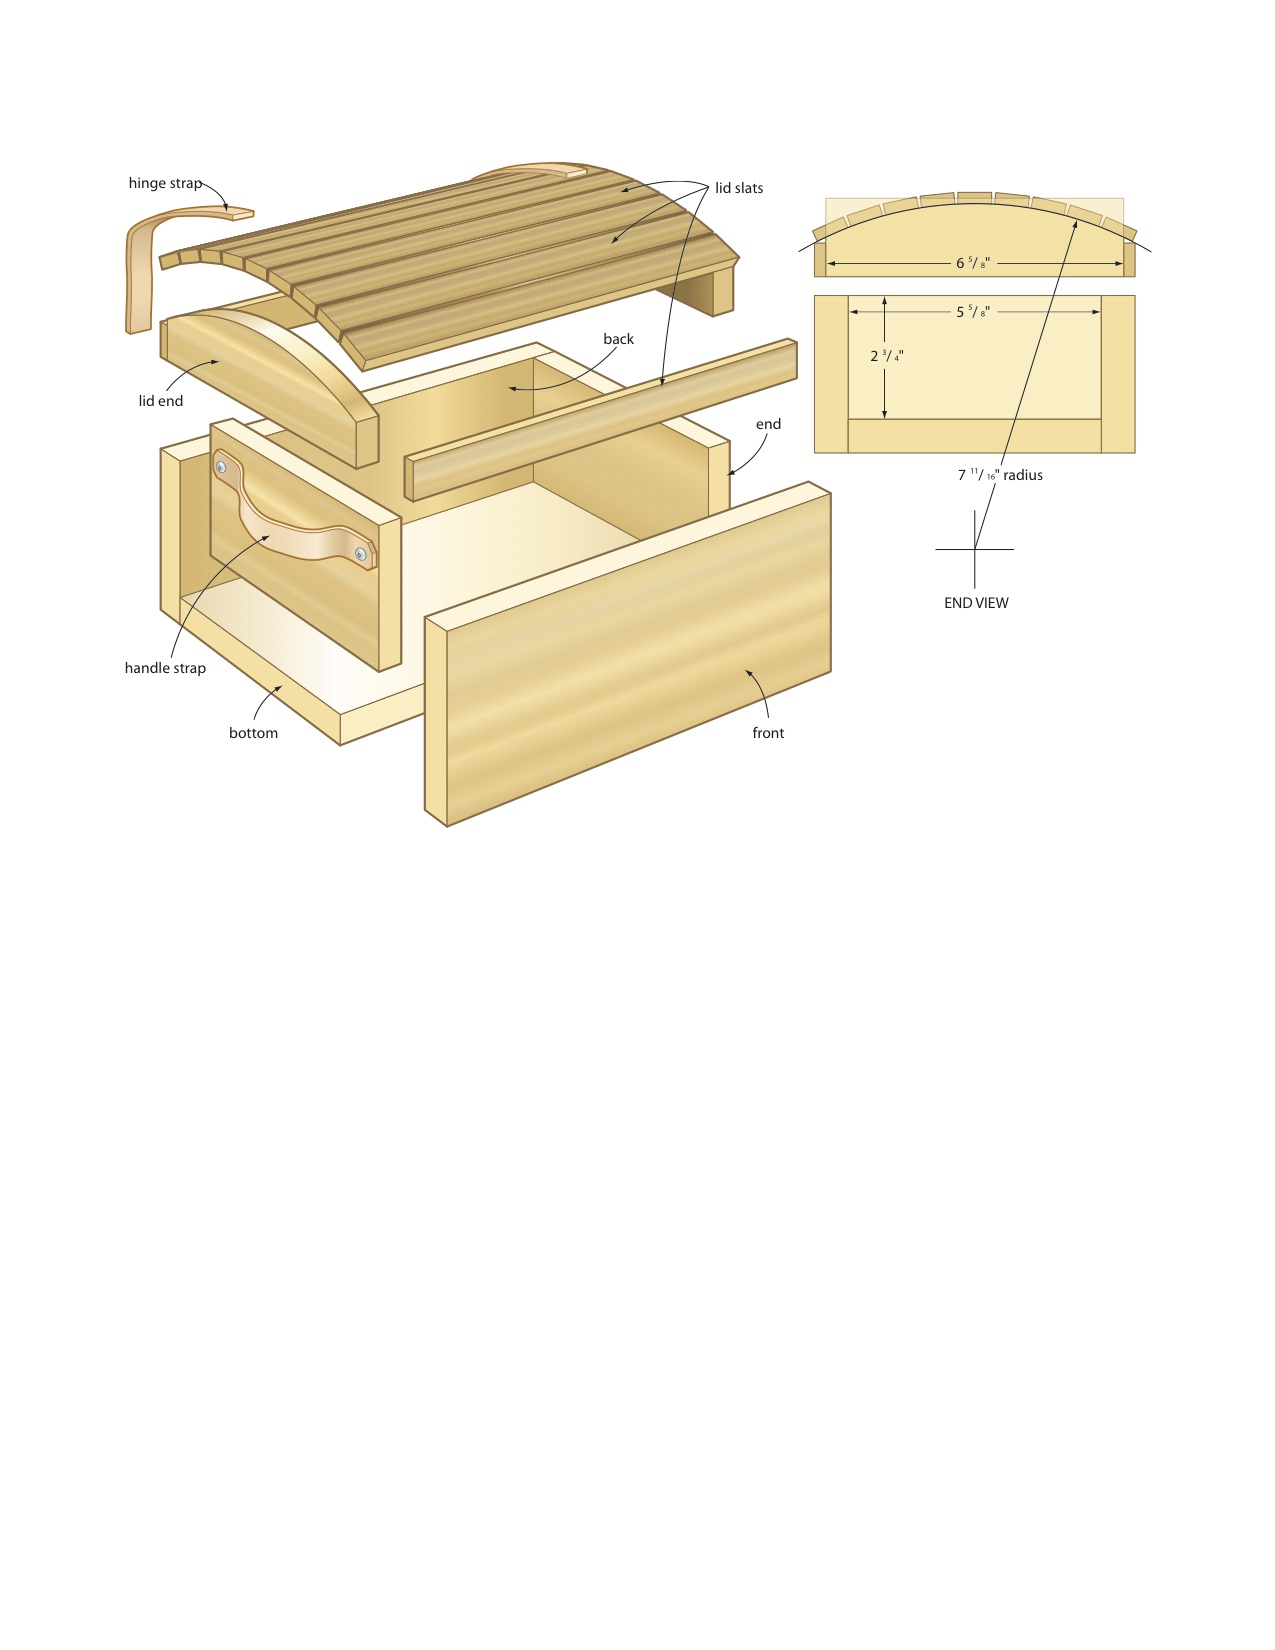 ... how to build a small wooden treasure chest PDF Free Download